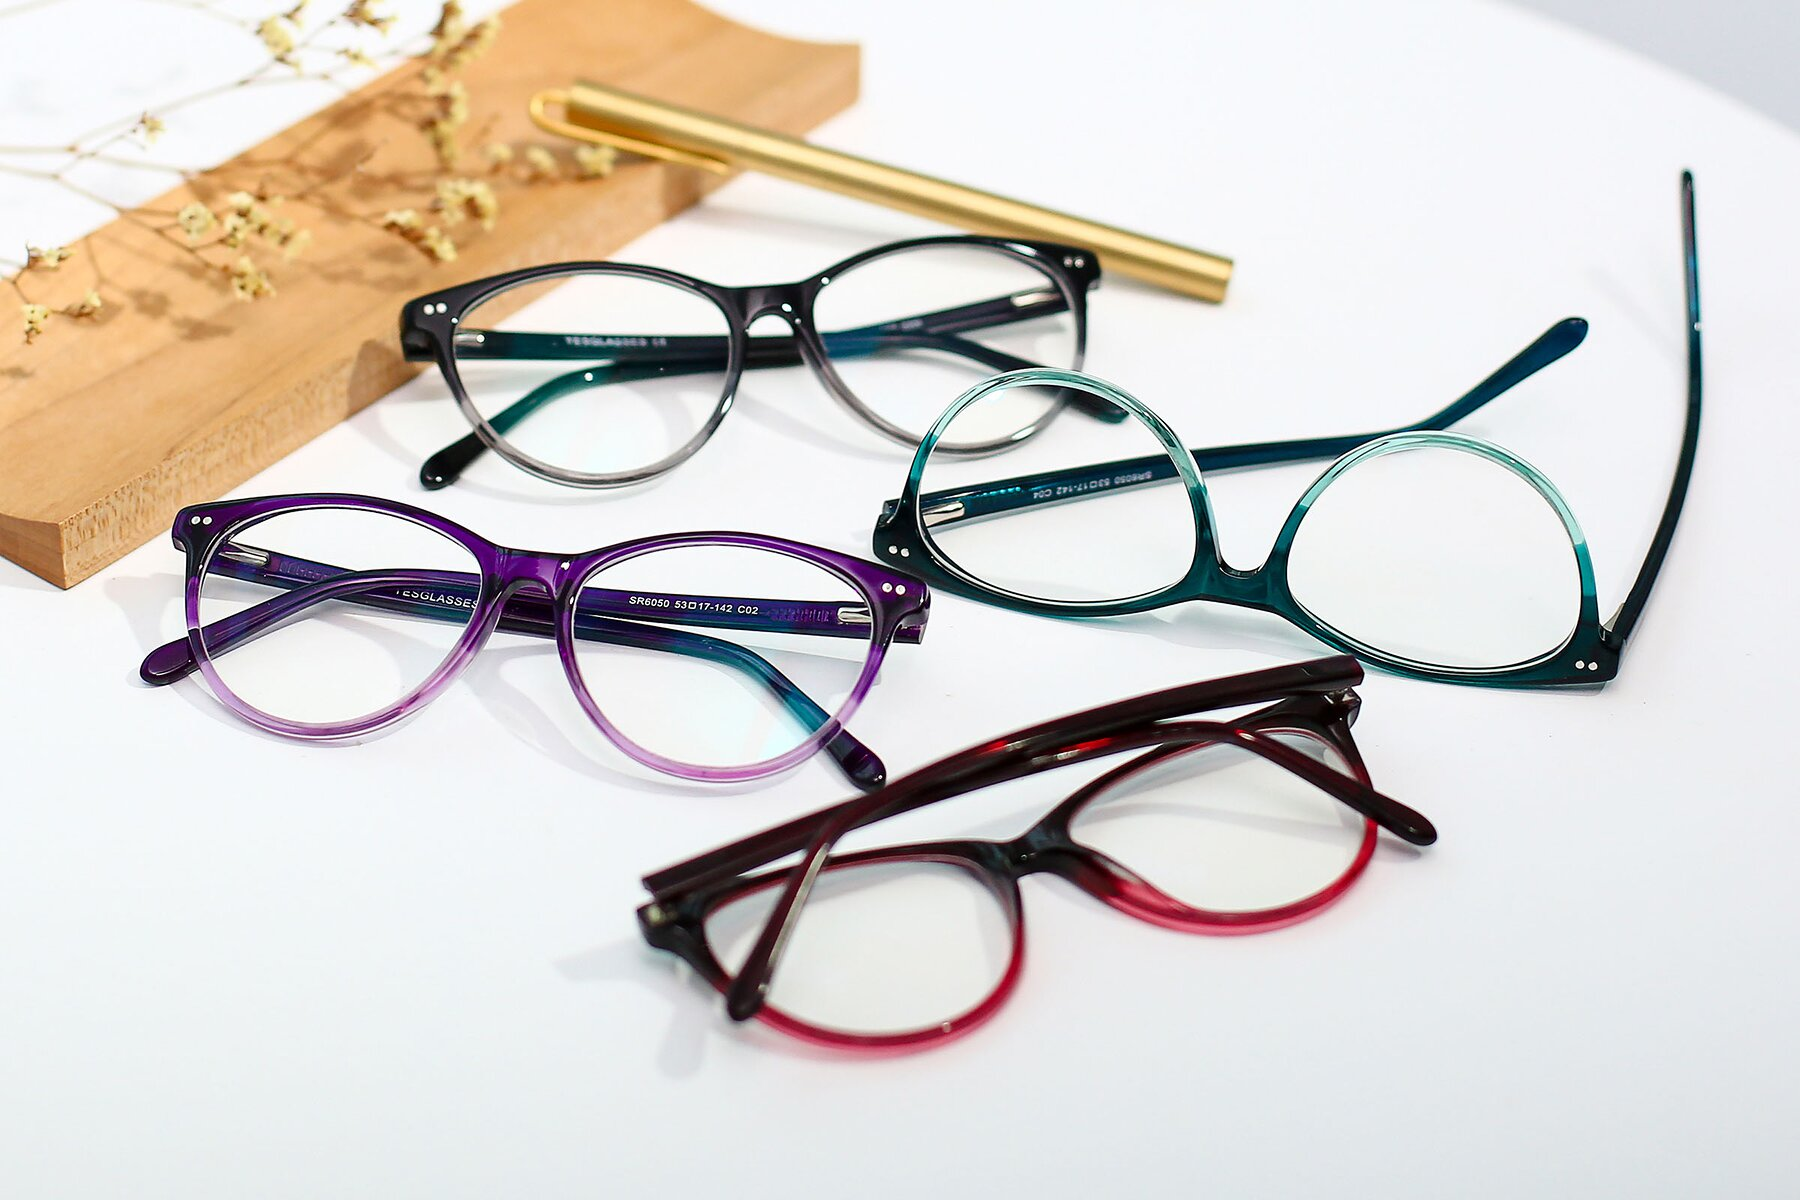 Women's lifestyle photography #4 of SR6050 in Transparent Gradient Violet with Clear Eyeglass Lenses